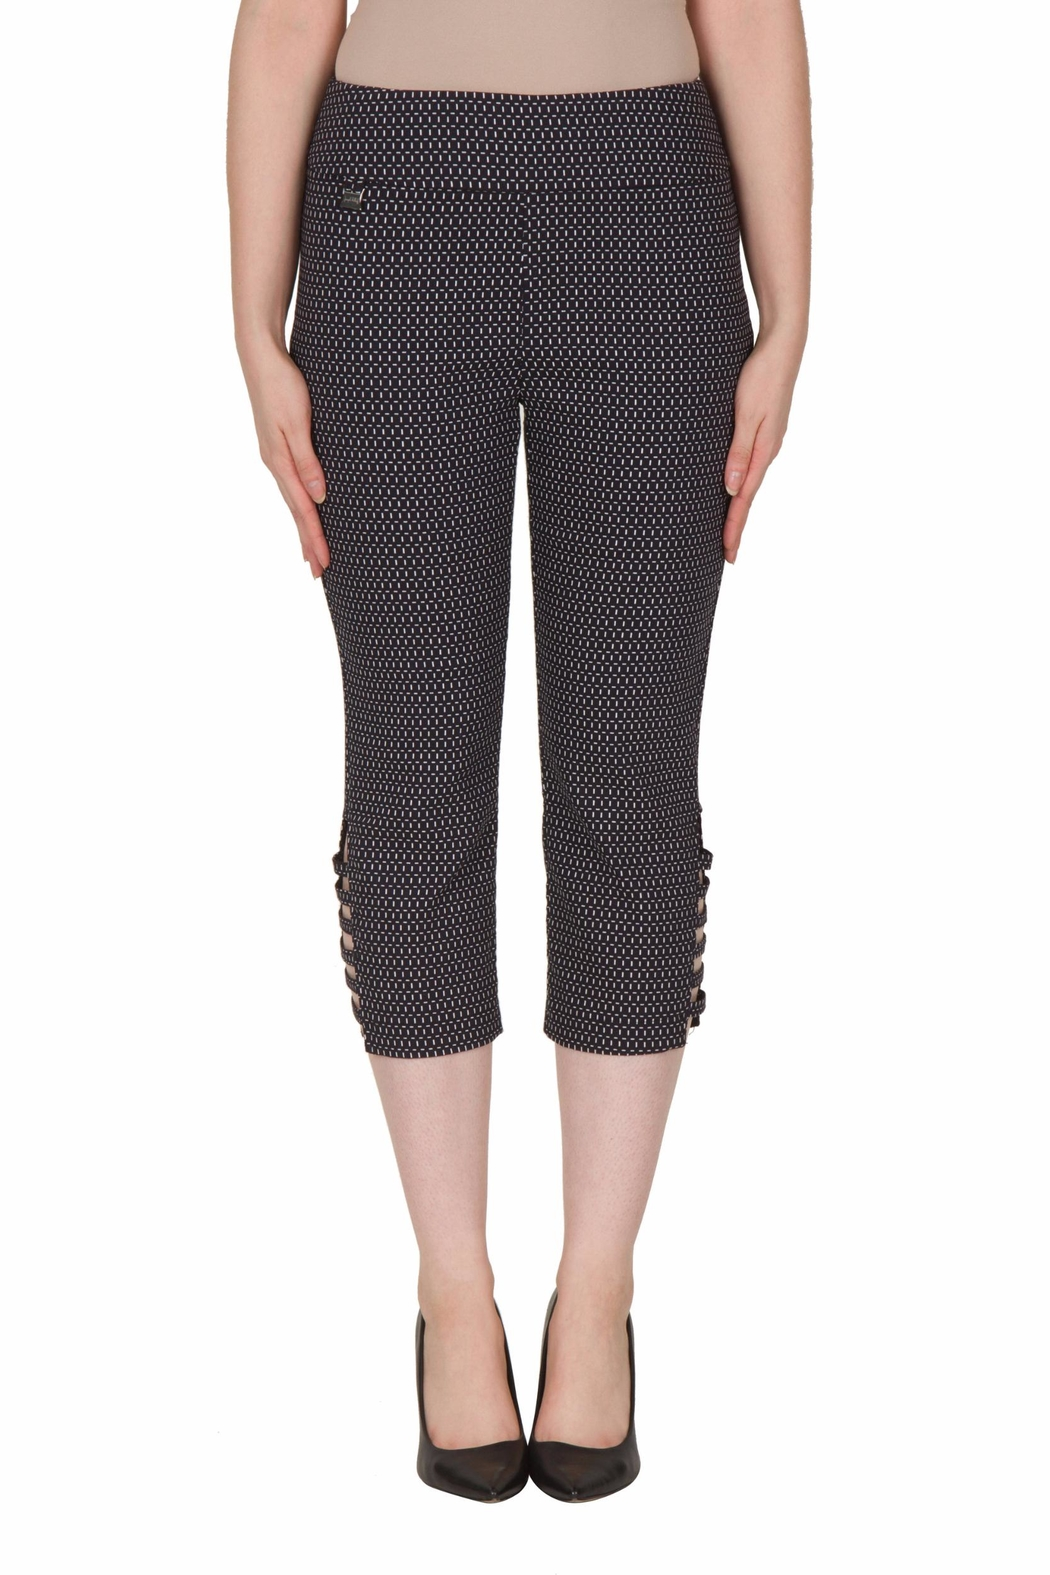 Joseph Ribkoff Cut Out Capri Pant - Front Cropped Image